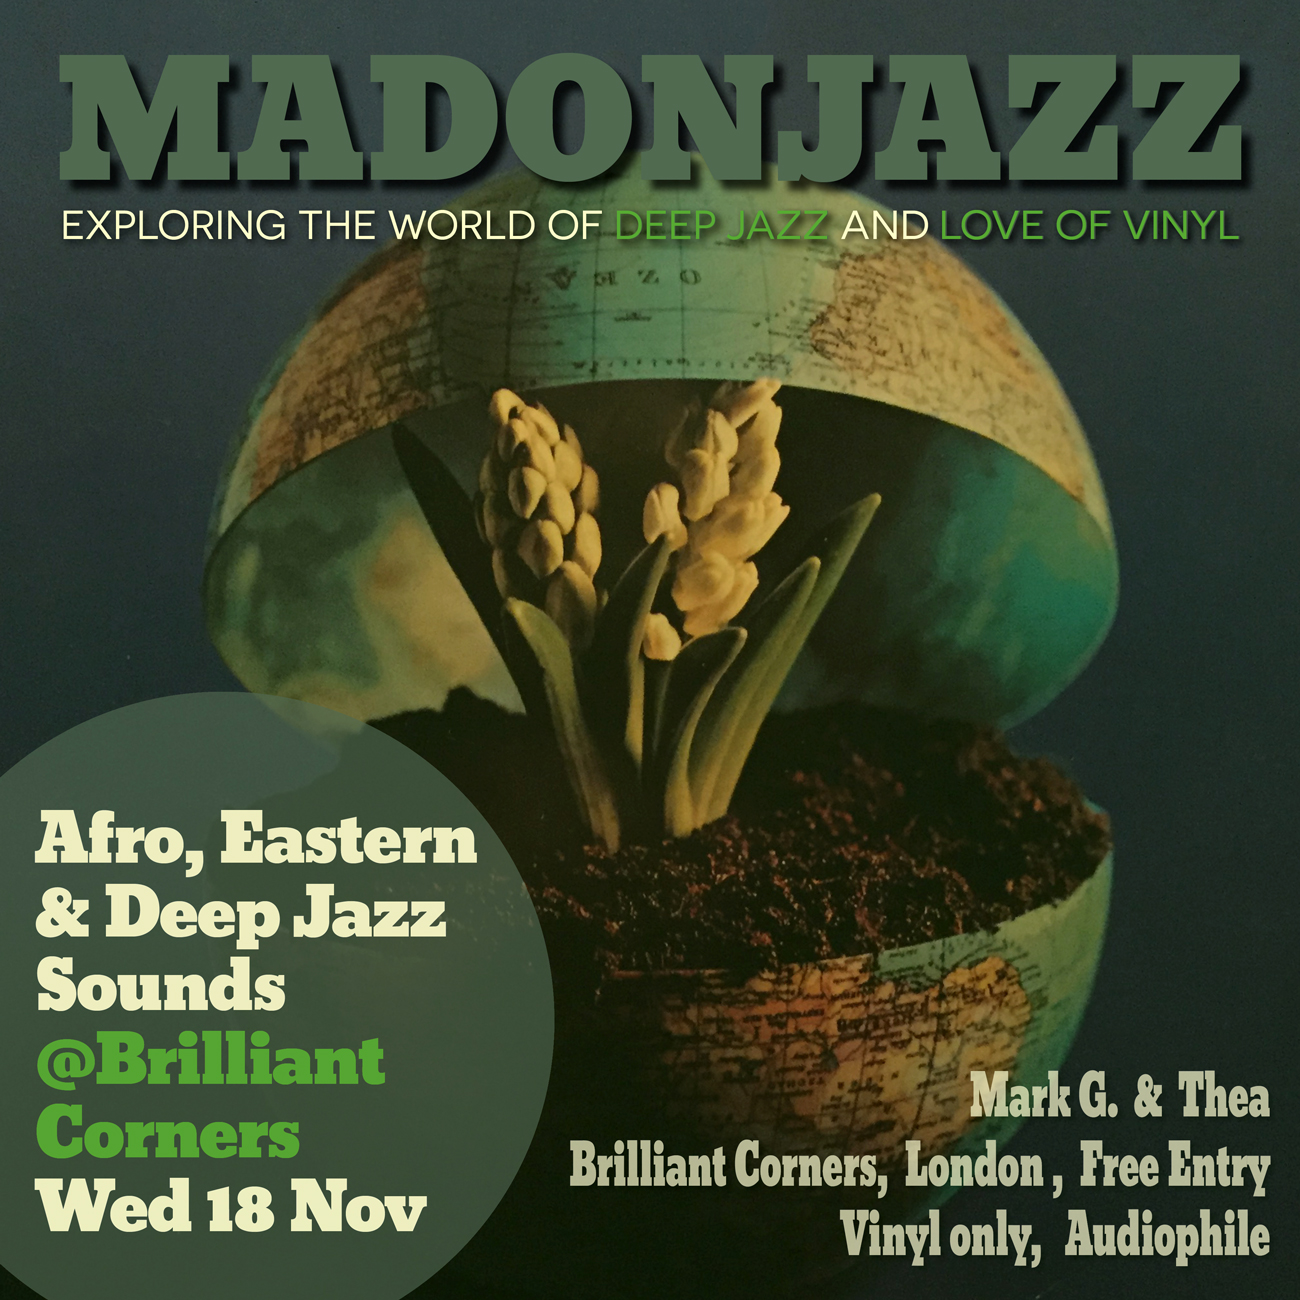 MADONJAZZ at Brilliant Corners London Wednesday 18 November 2015